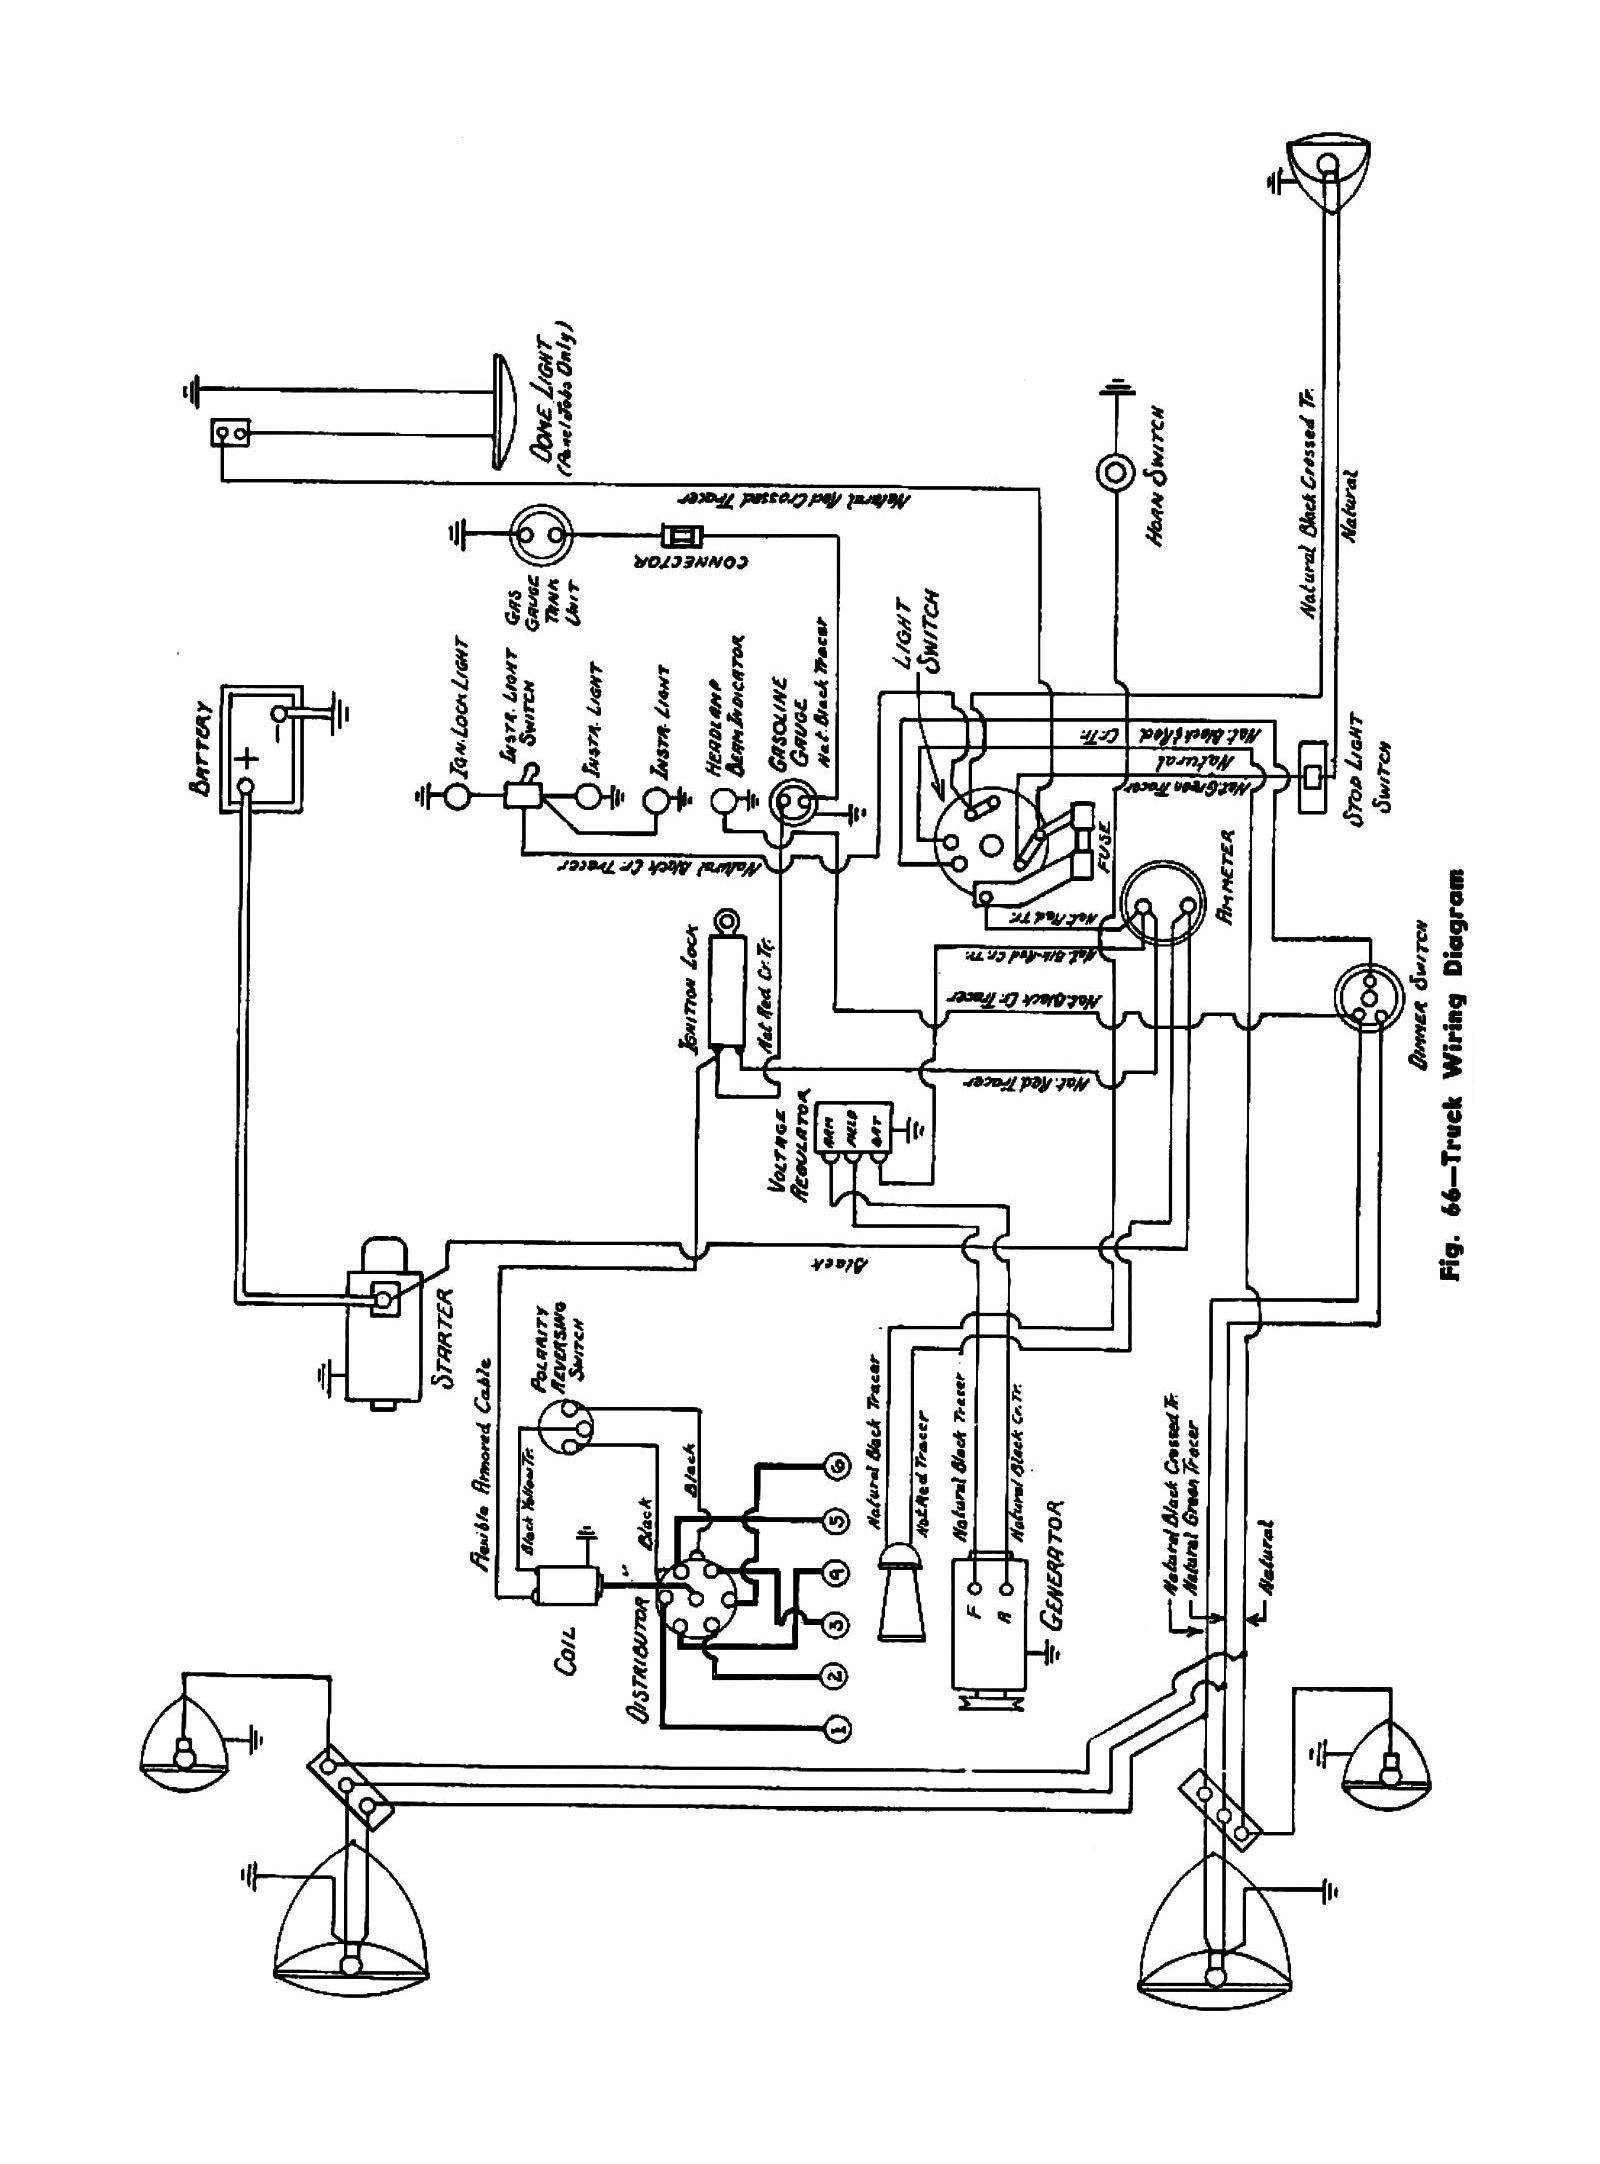 45truck ihc truck wiring diagrams mazda truck wiring diagrams \u2022 free Chevy Truck Fuse Box Diagram at honlapkeszites.co